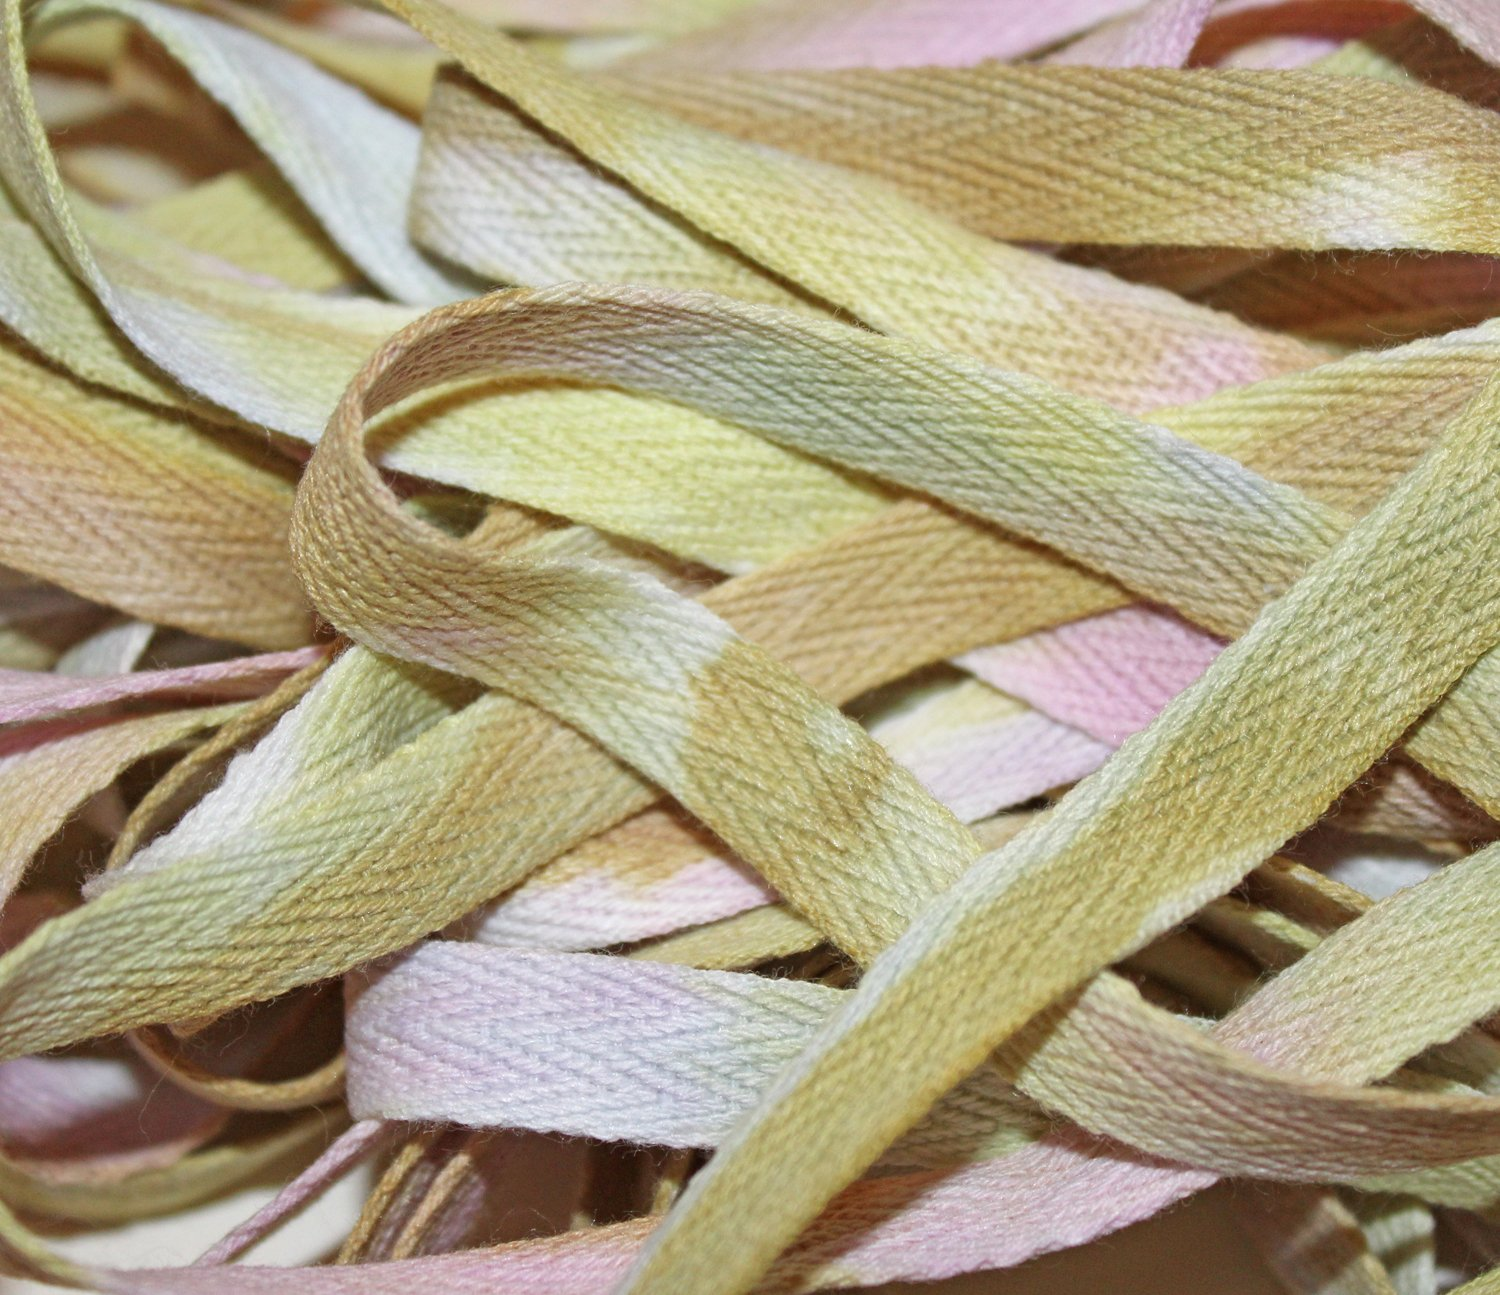 Wisteria- Hand-dyed Cotton Twill Tape 3/8 wide